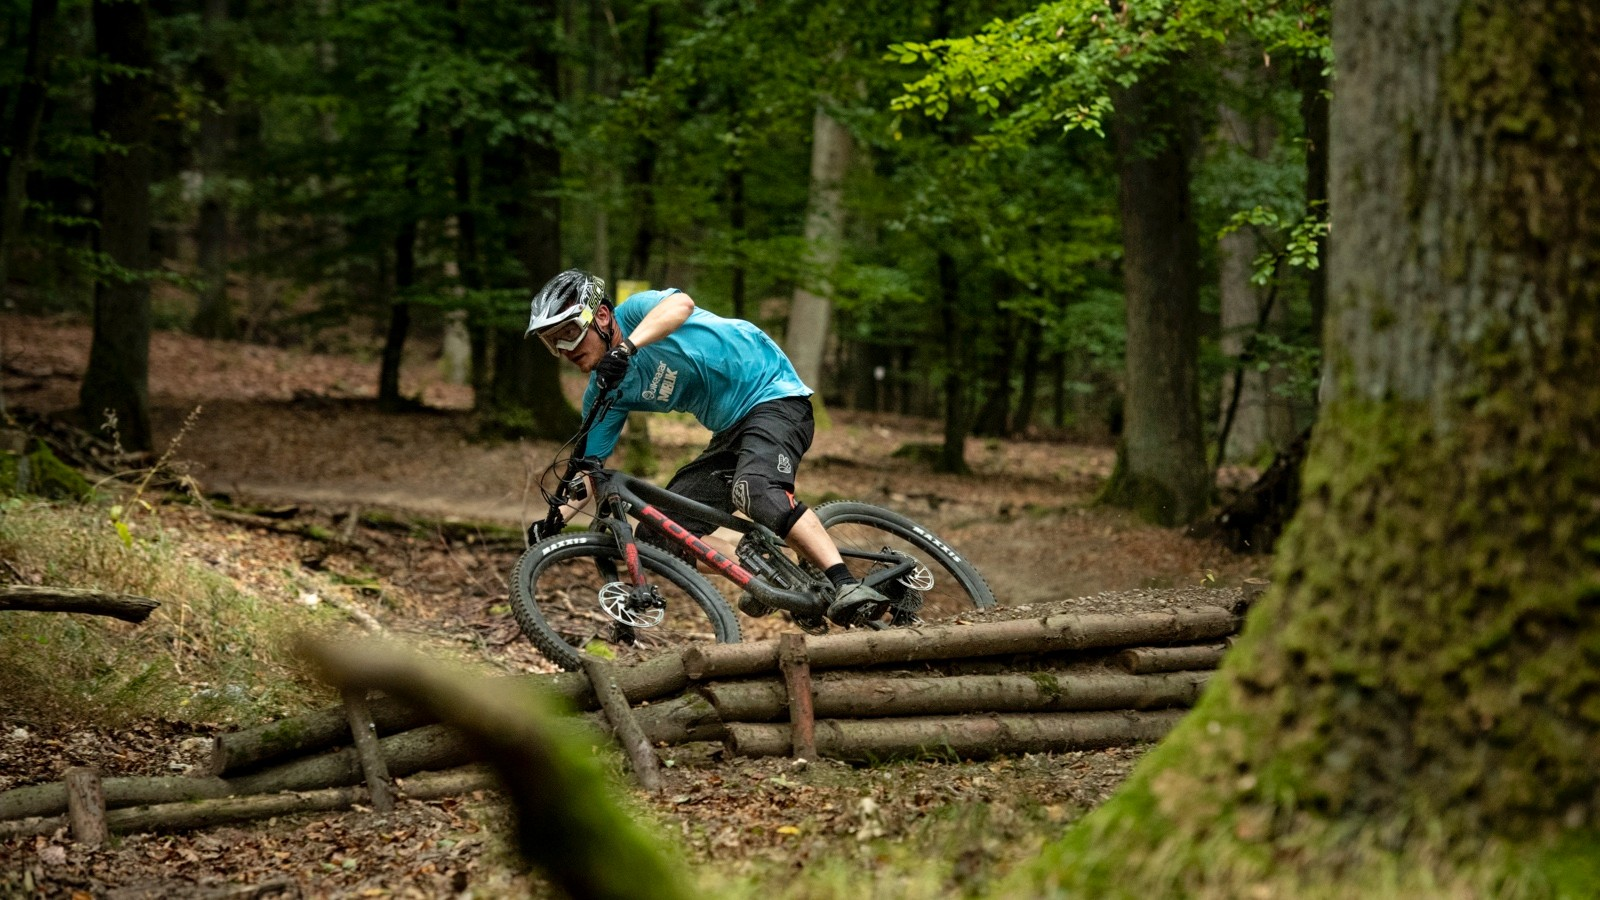 I spent a morning riding the bike in a relatively smooth bike park